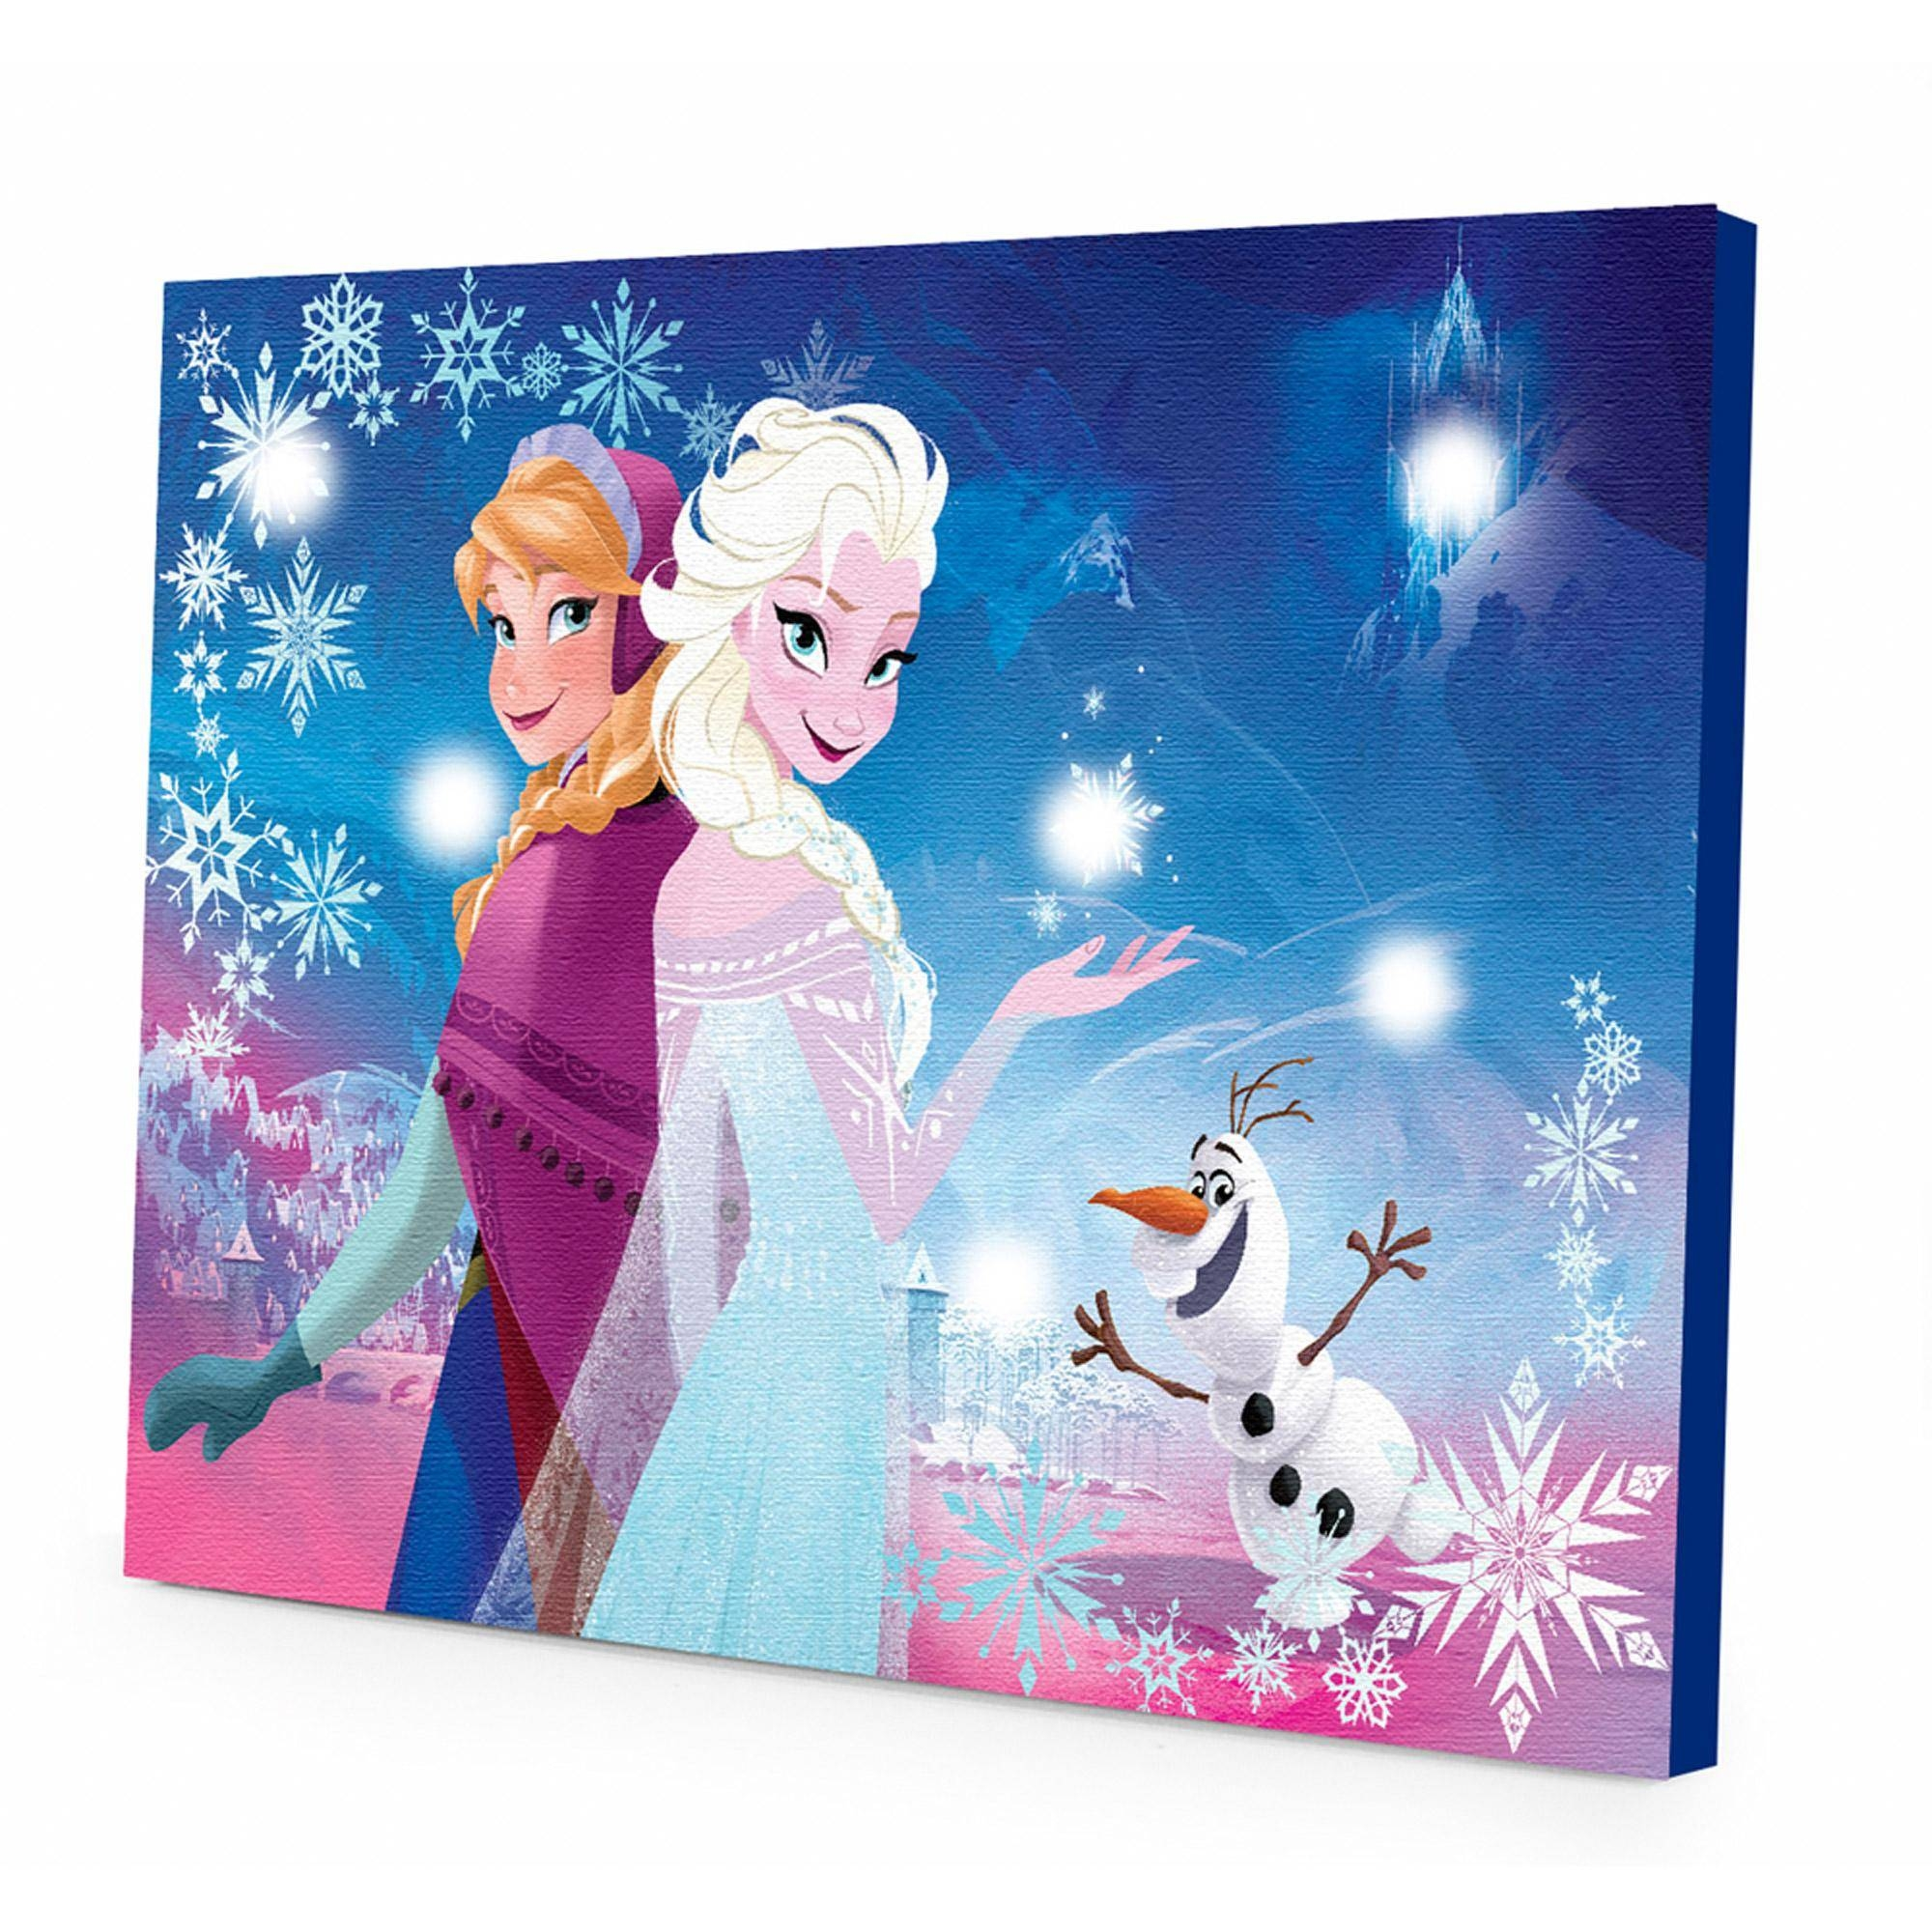 Wall Art Designs: Adorable Painting Disney Canvas Wall Art For Throughout Current Disney Princess Framed Wall Art (View 16 of 20)